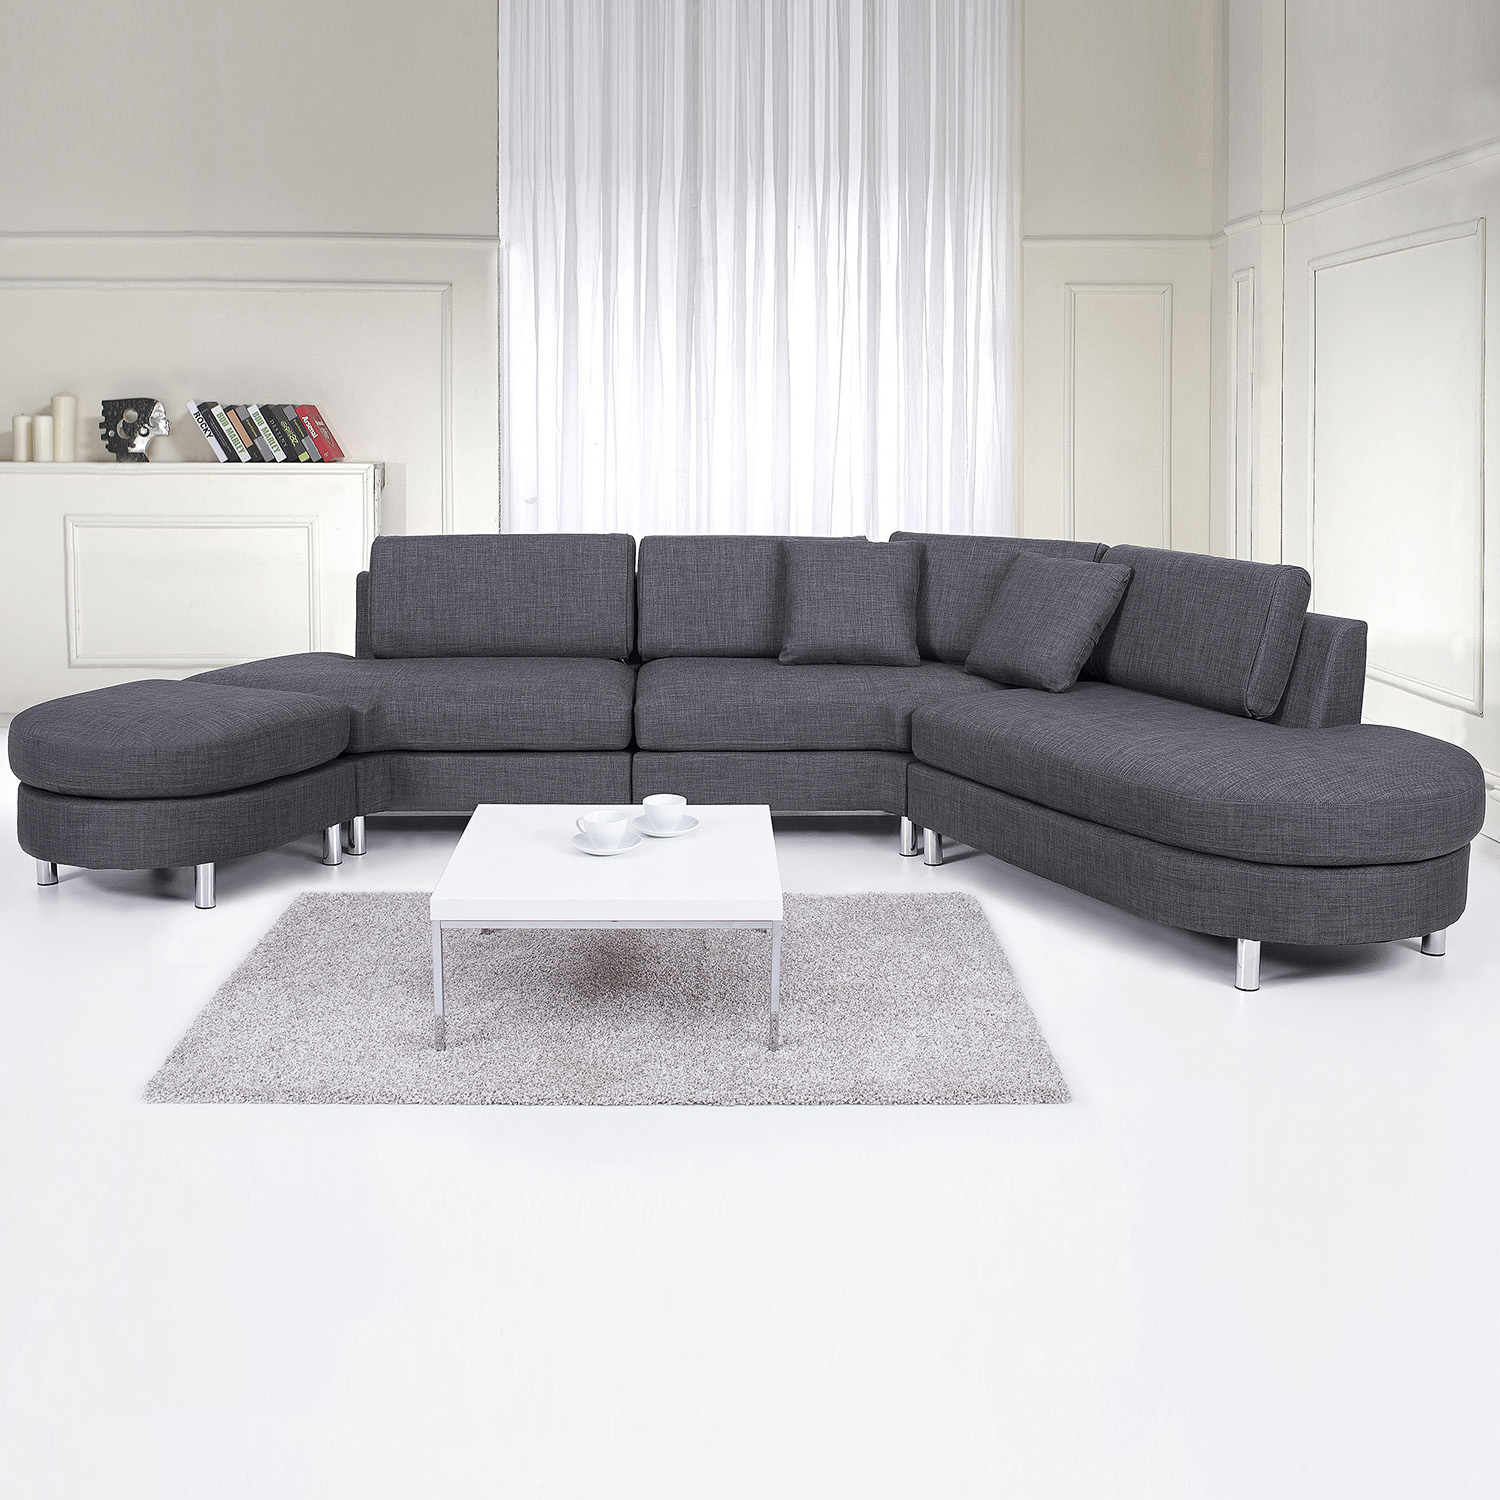 Upholstered Sofa 5 Seater Corner Couch Sectional Settee Grey Fabric Copenhagen Ebay